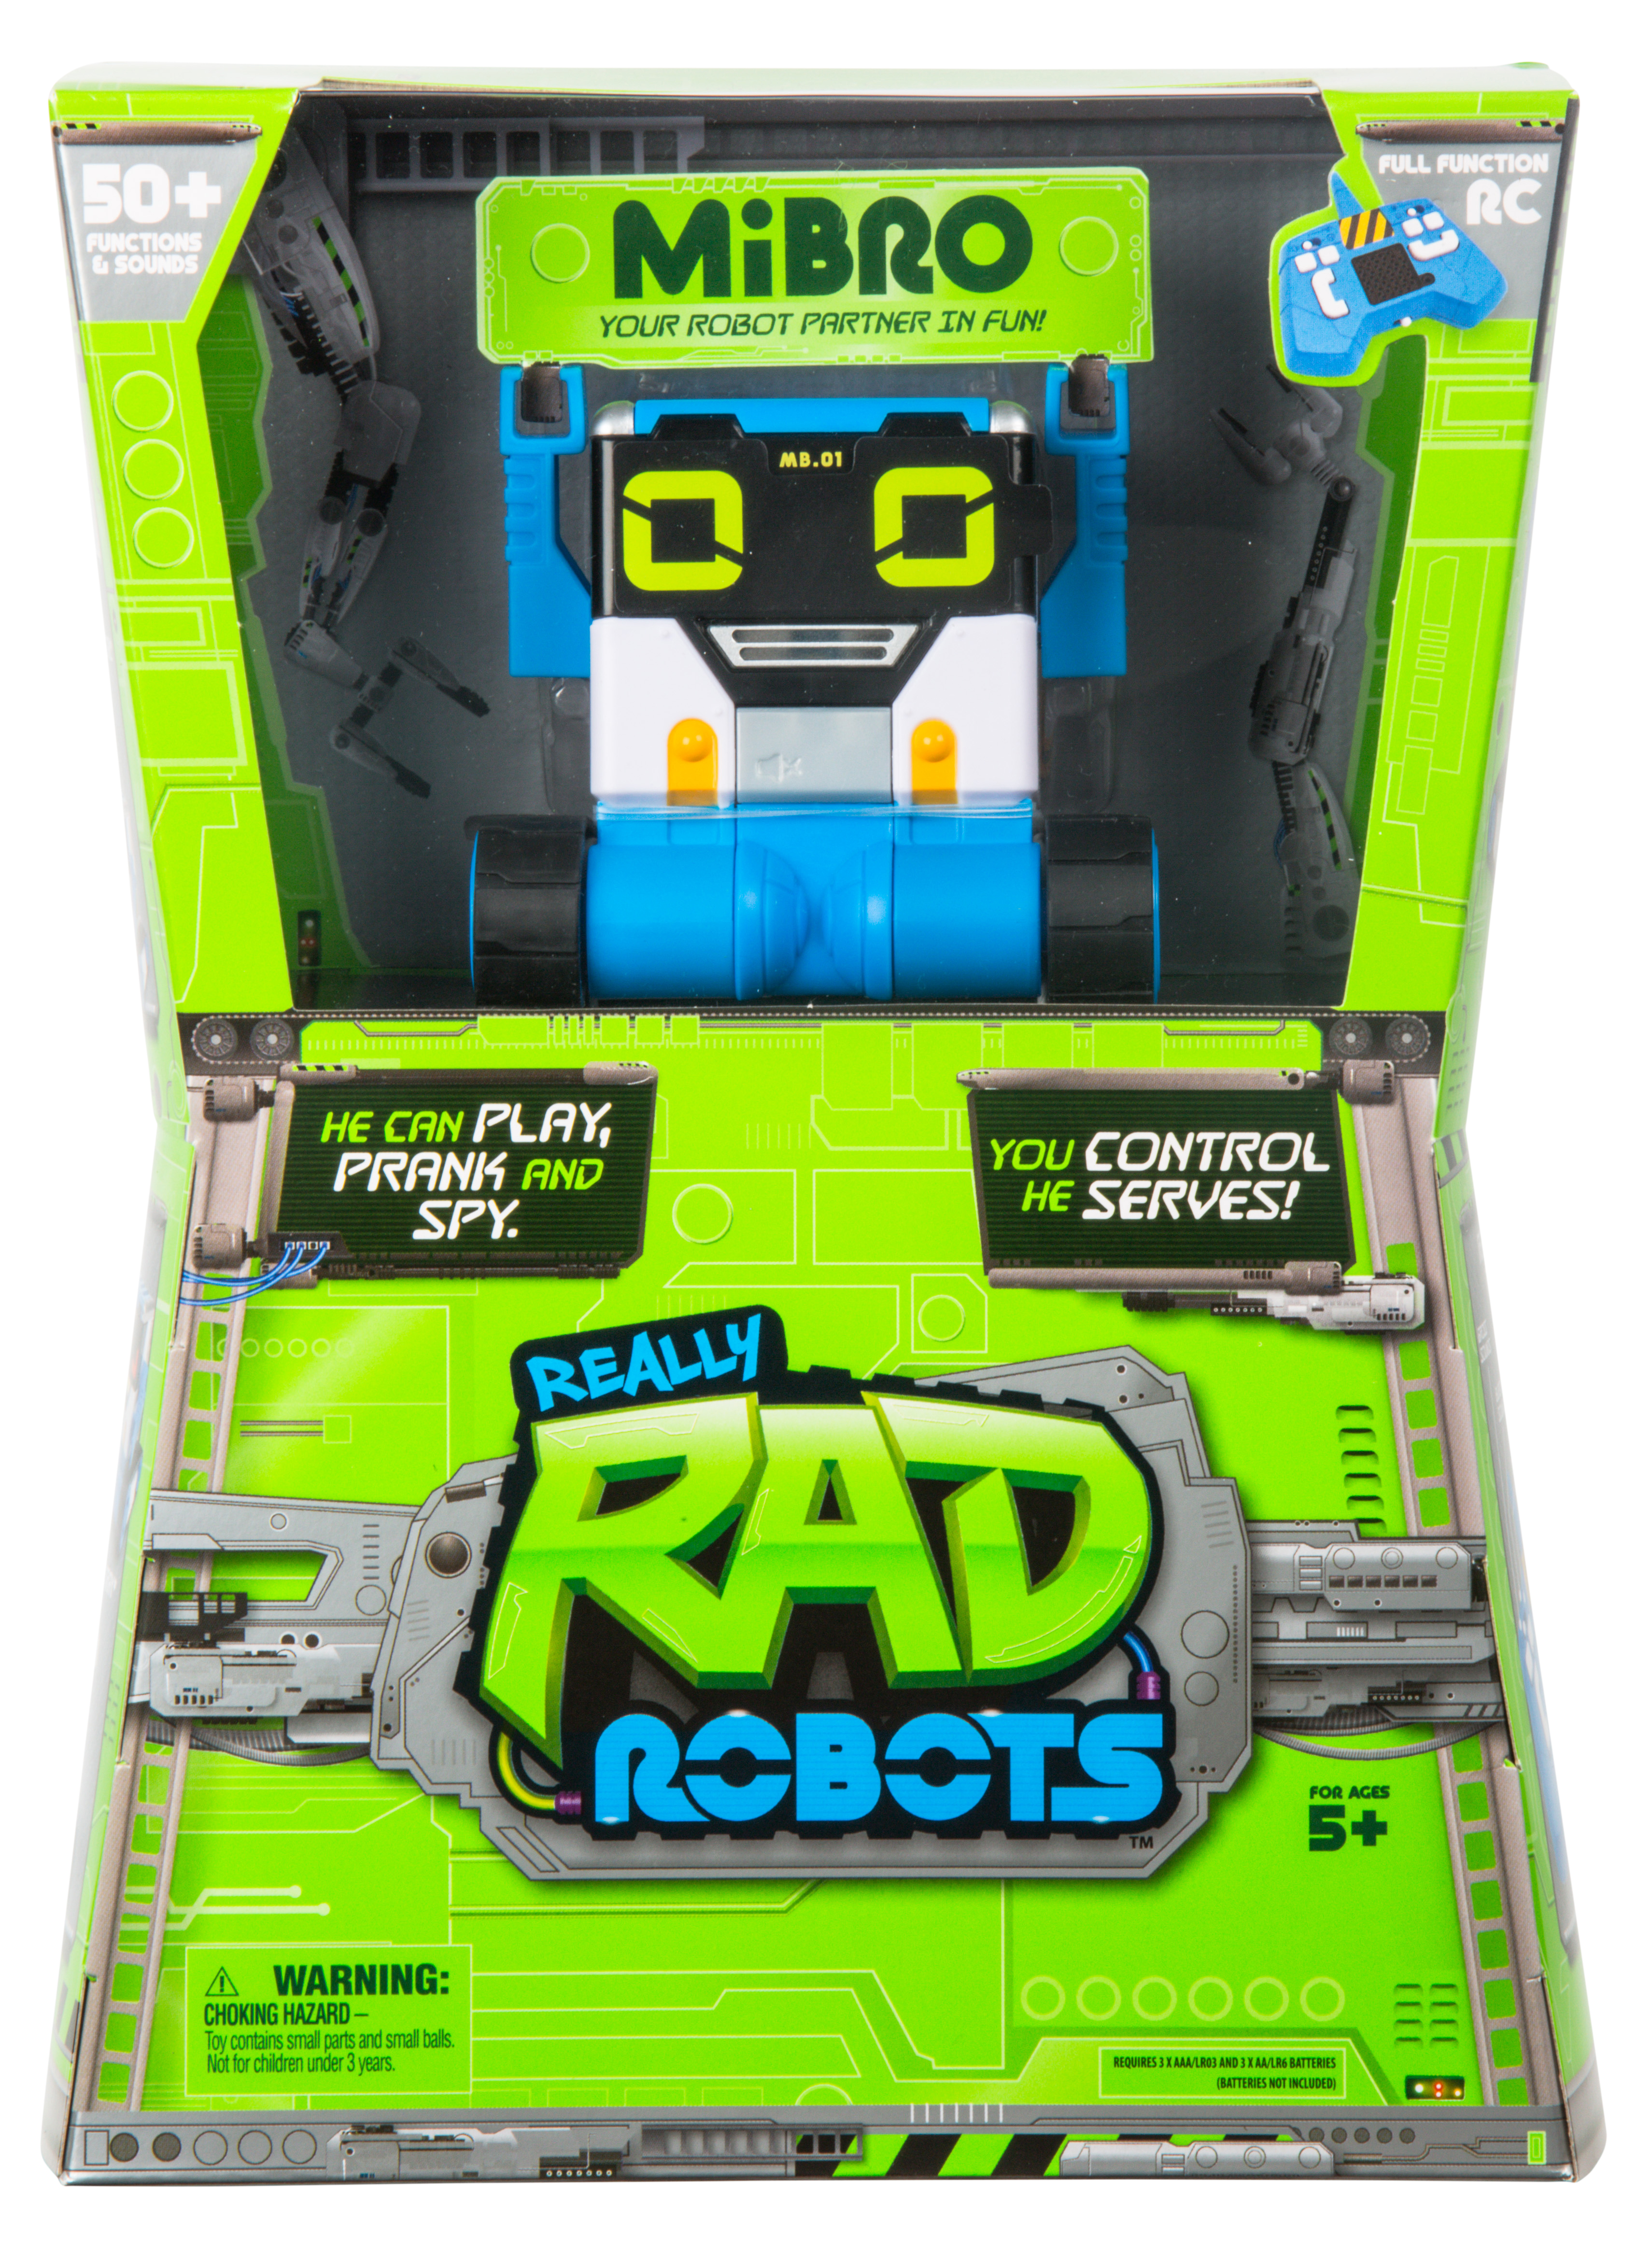 Really Rad Robots MiBro